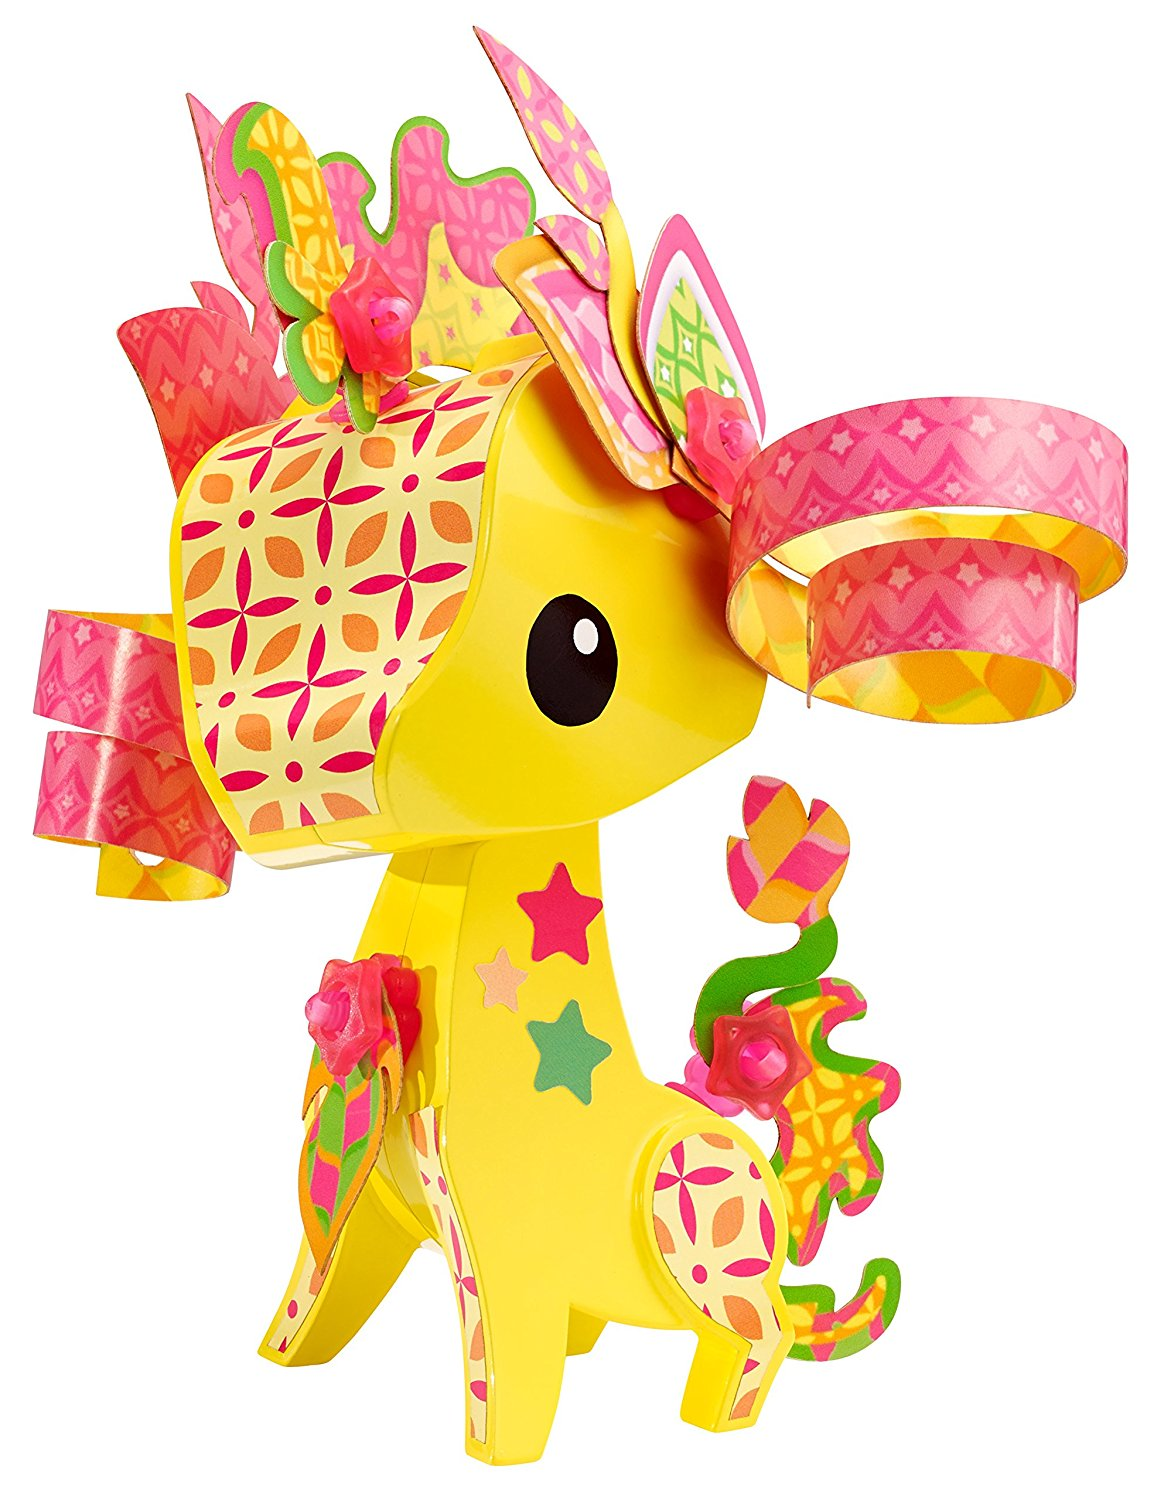 AmiGami Giraffe Figure, AmiGami is a totally New way to play and express your creativity!... by